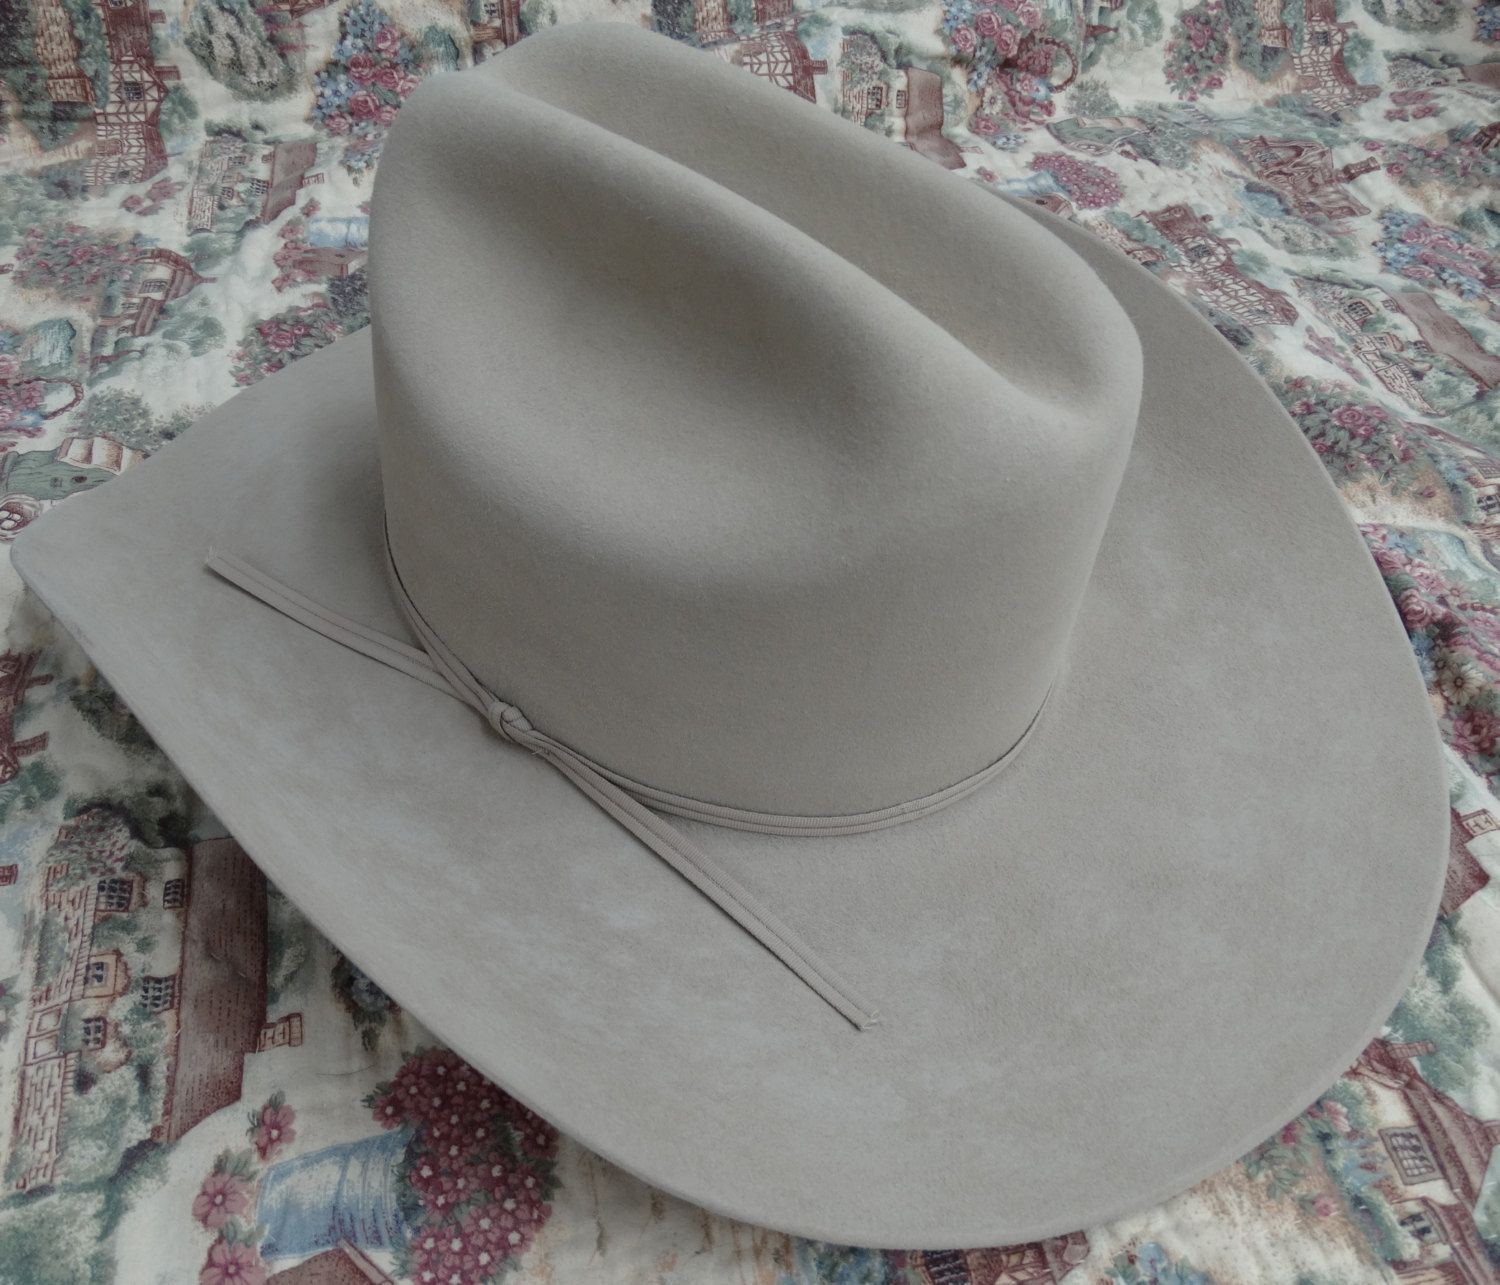 6ca588e7b98 Stetson XXXXX Ranch Tan Cattleman Cowboy Hat Size 6 - 7 8 (55) by  SundanceandSass on Etsy